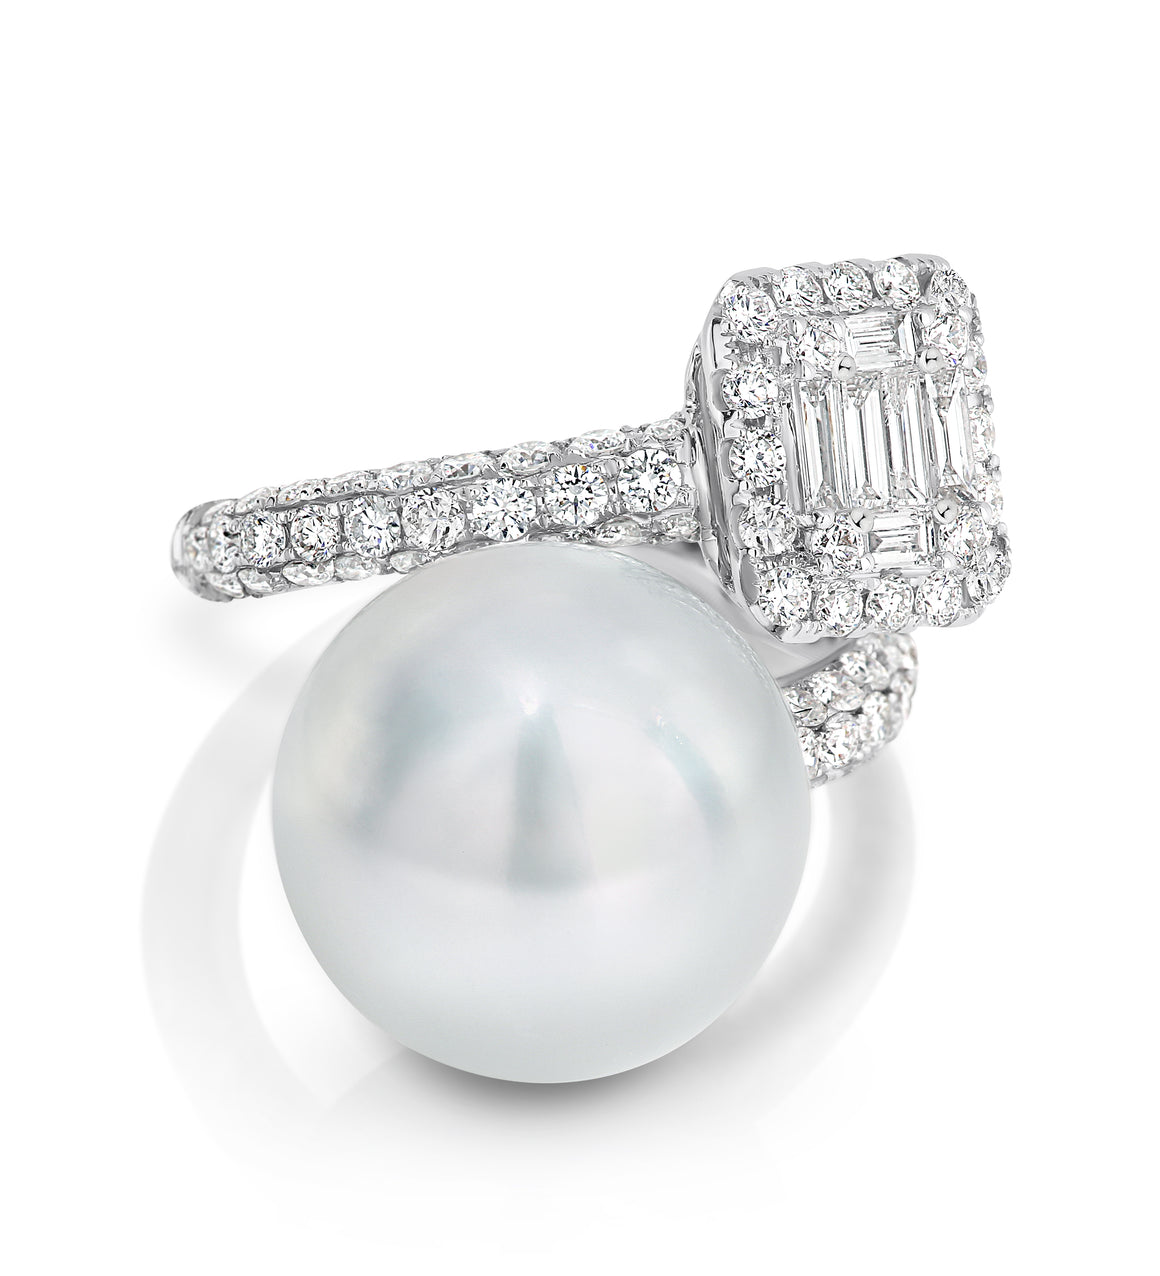 Diamond and South Sea Pearl 'Dominique' Ring - Gemma Stone  ABN:51 621 127 866